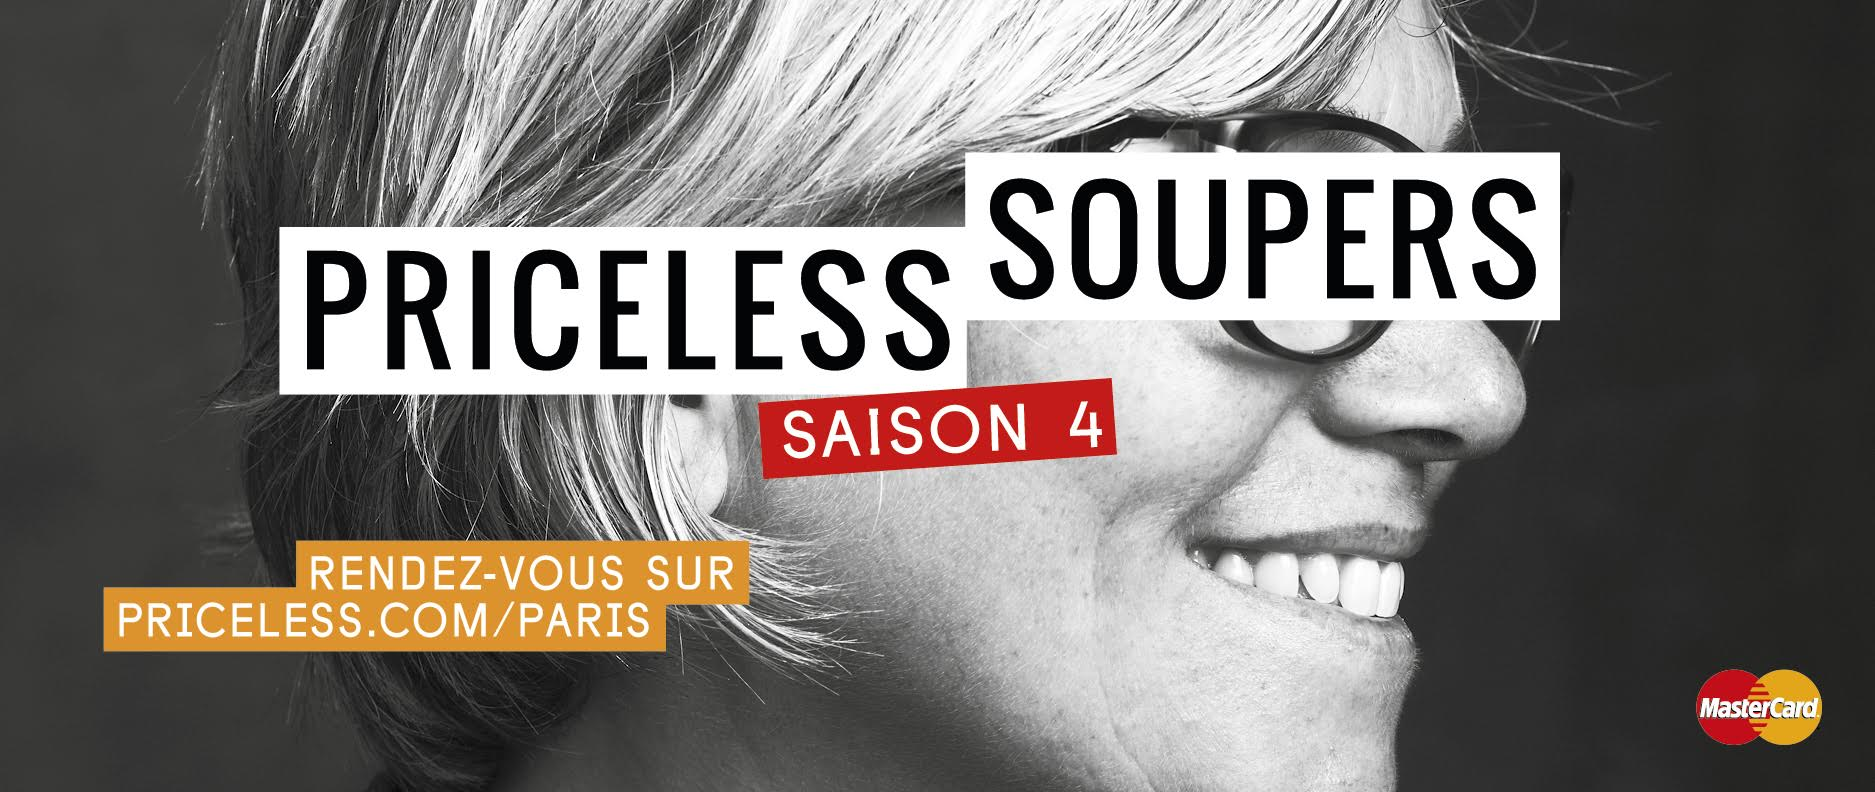 Fooding Priceless Soupers saison 4